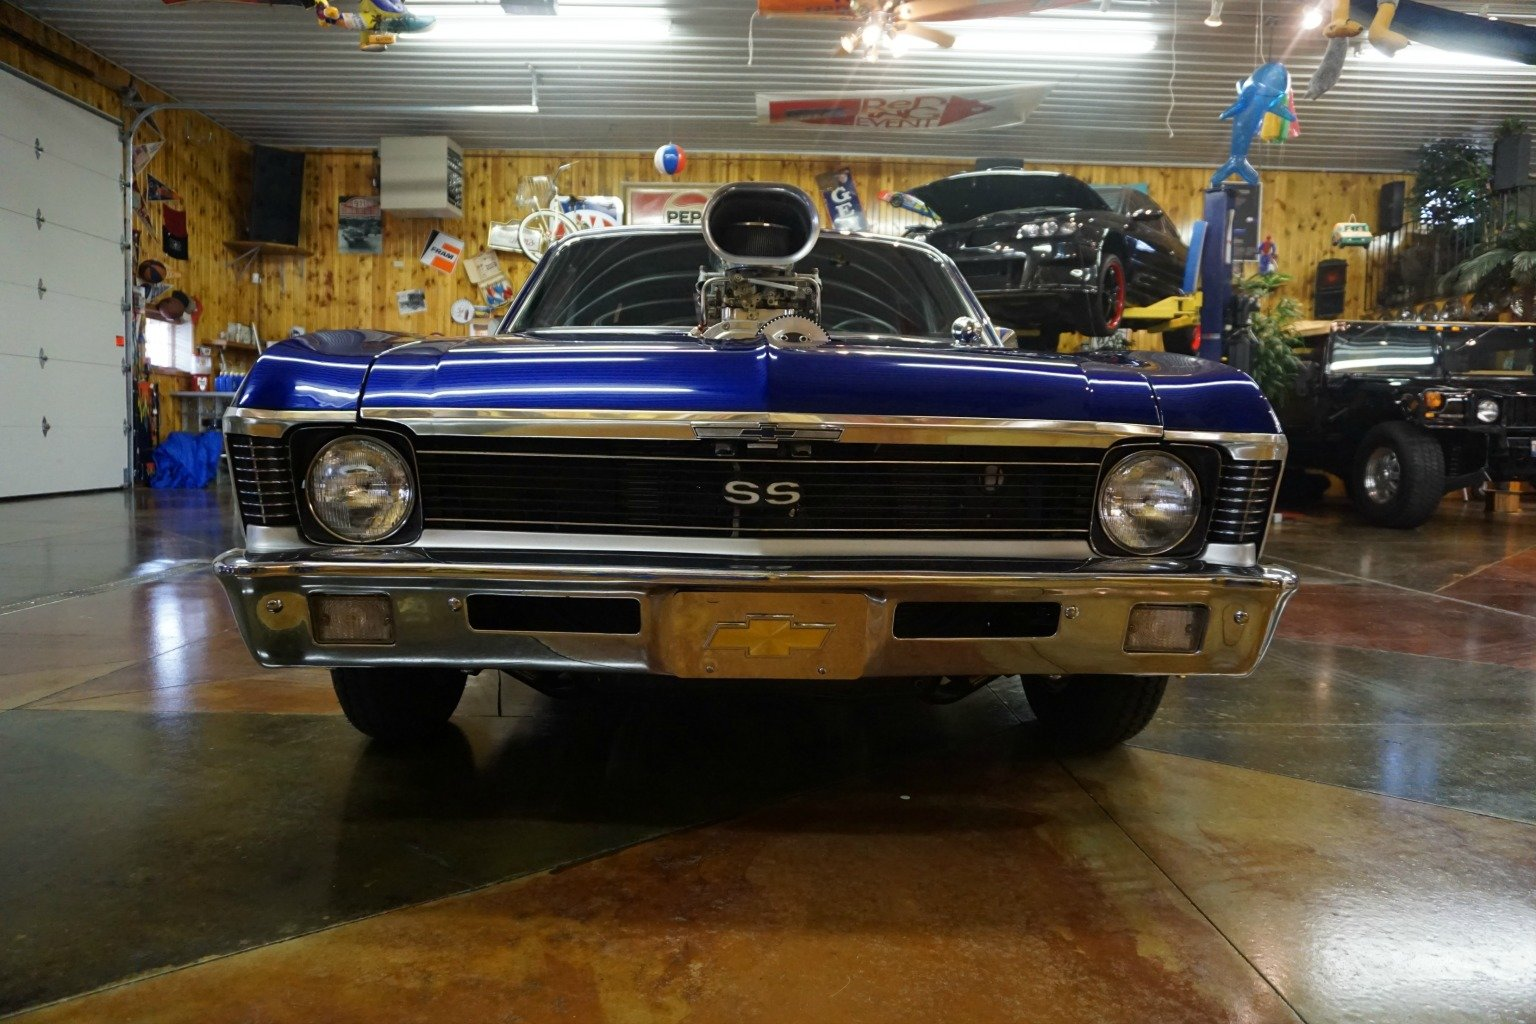 1968 Chevrolet Nova Pro-Street (Pell Lake, Wisconsin) For Sale (picture 1 of 6)